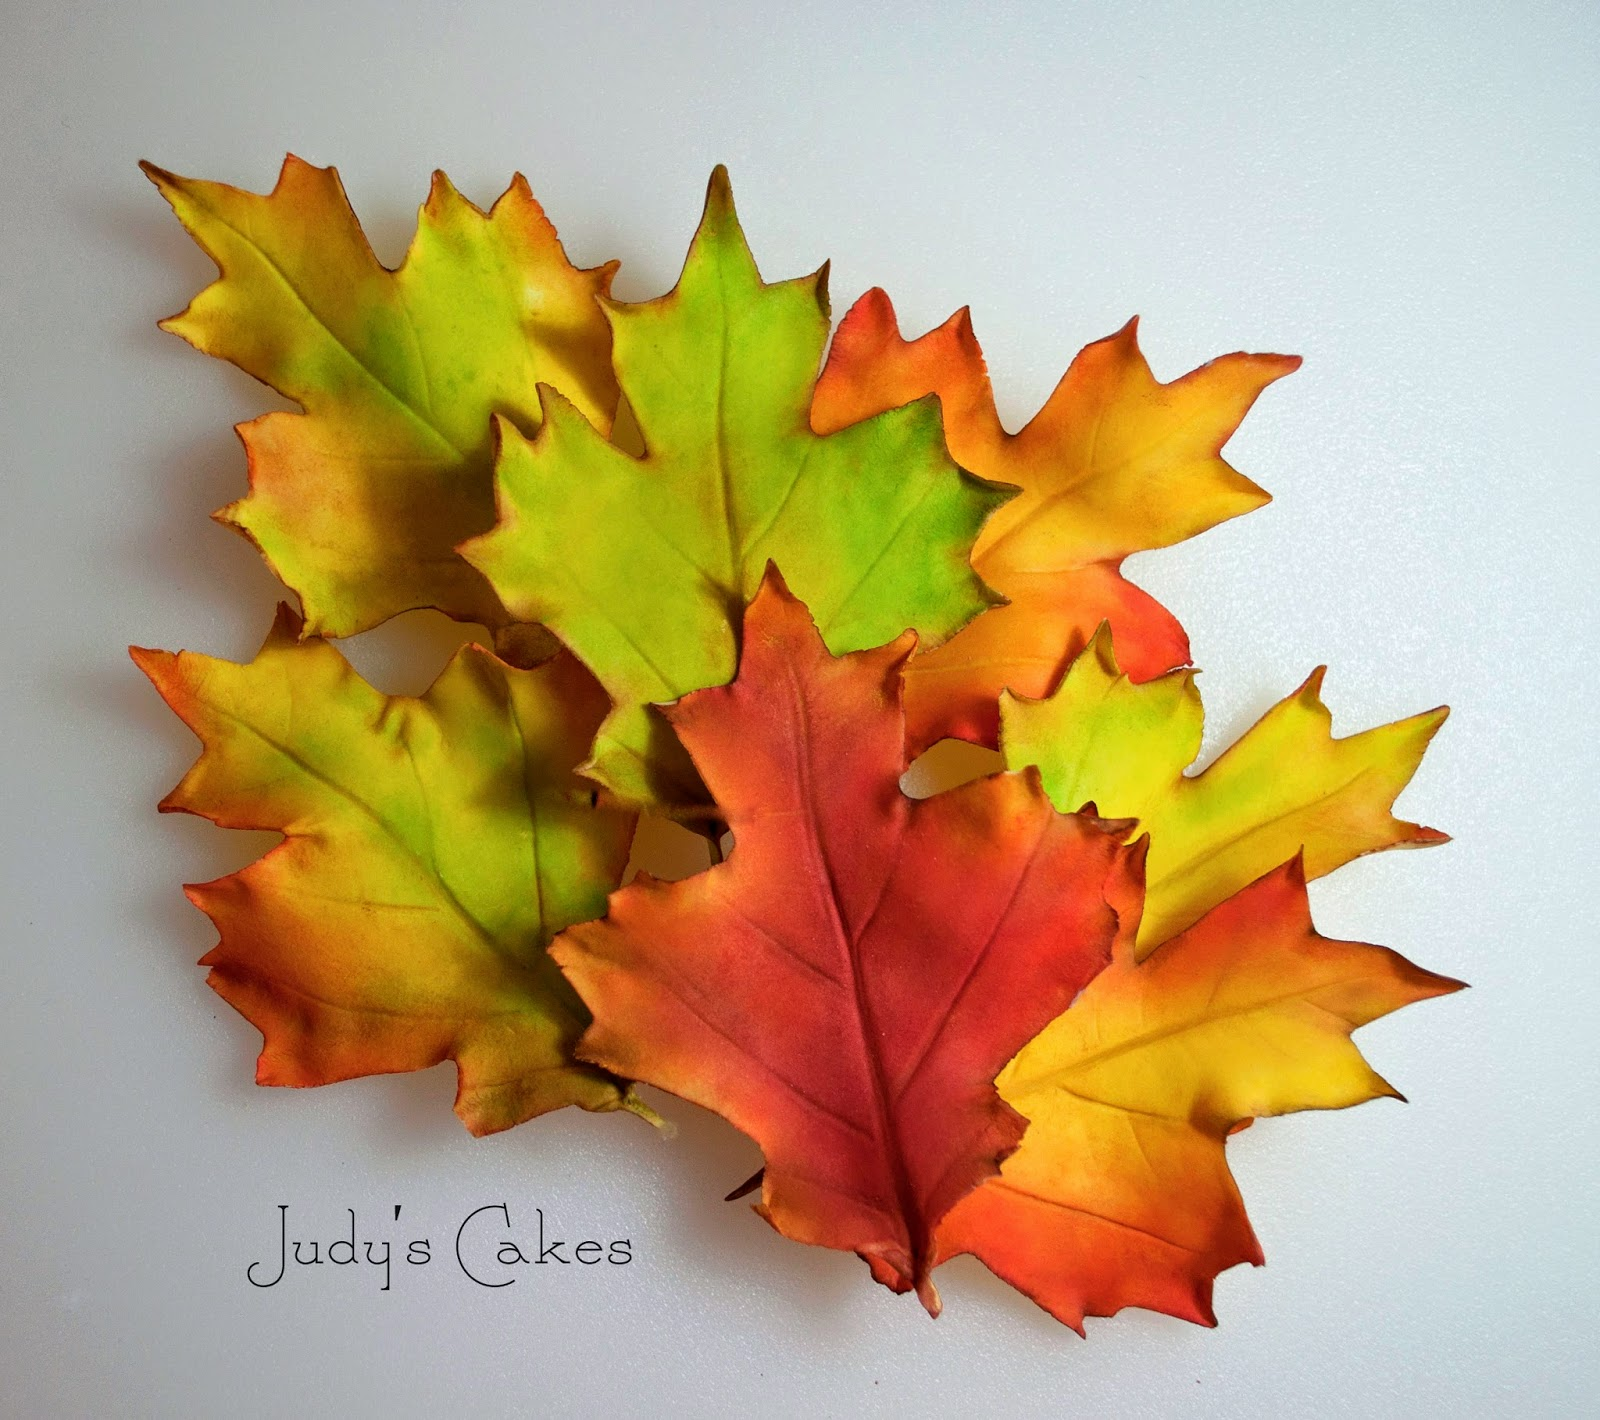 Making Leaves For Cake Decorating : Judy s Cakes: How to Make Fall Leaves - Part #2